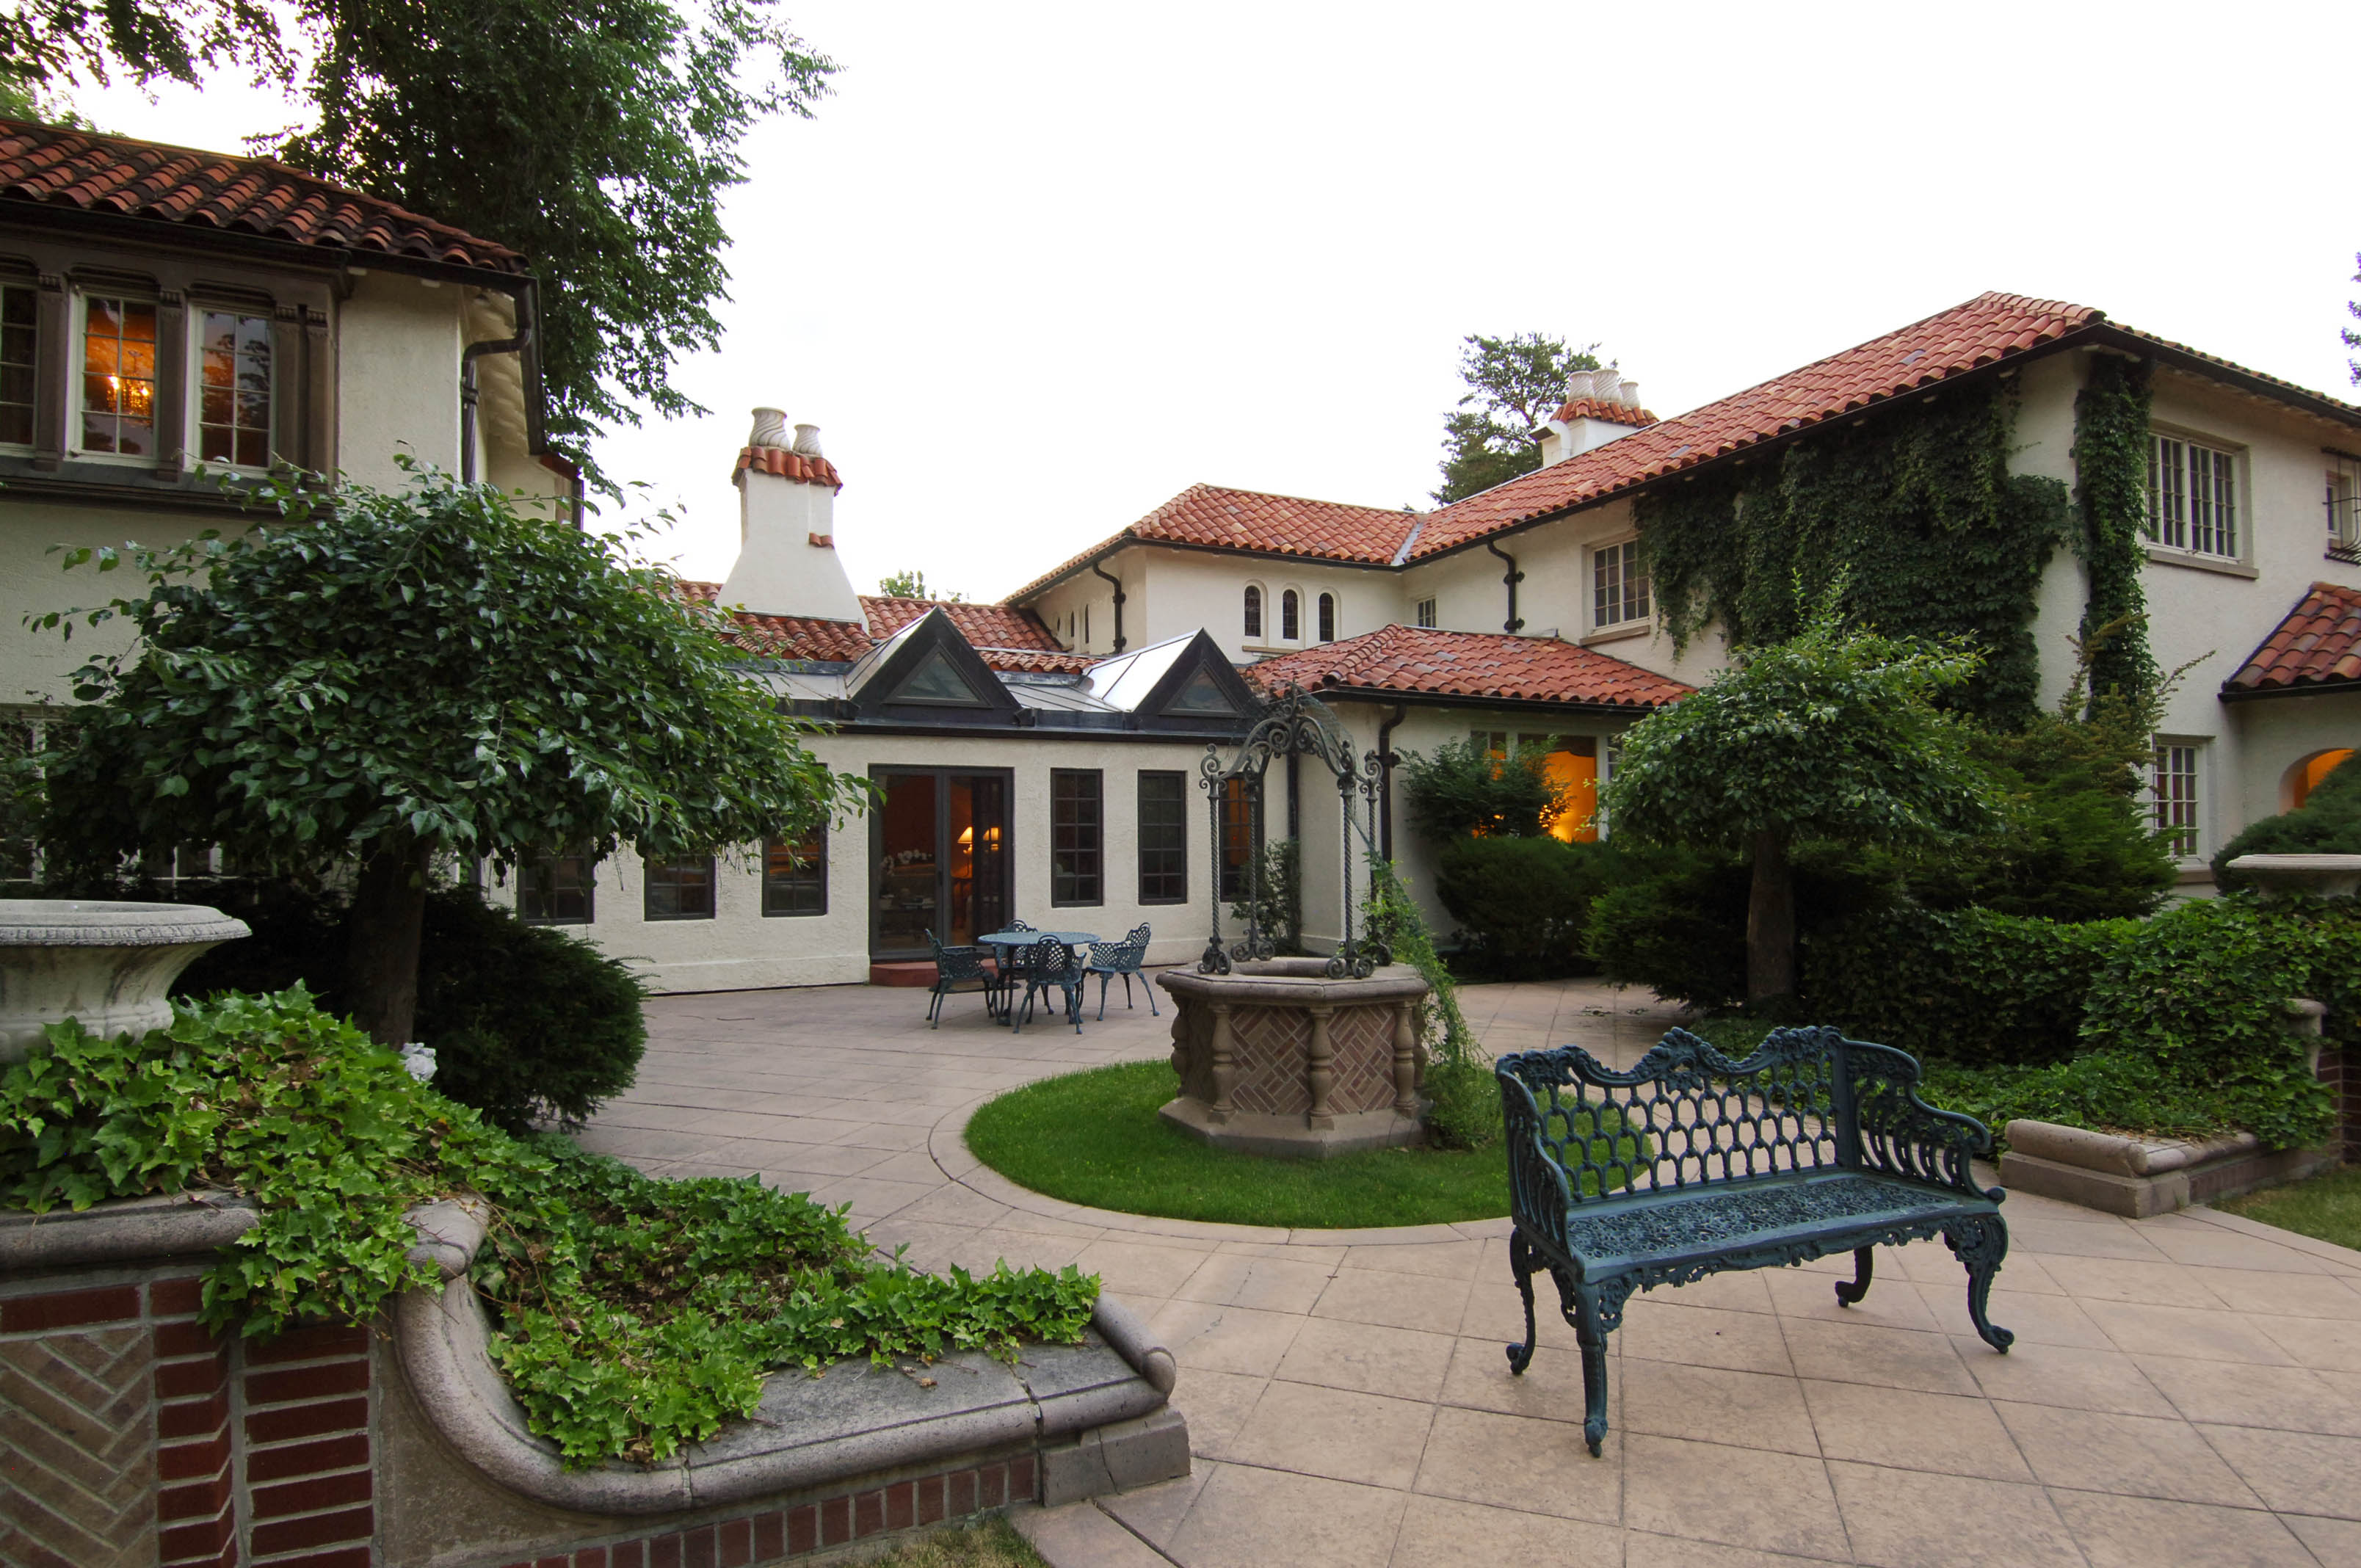 LIV Sotheby's International Realty Broker, Robert Wagner, closes 19 Elm Avenue, Maytag Mansion, the Highest Recent Sale in Colorado Springs.